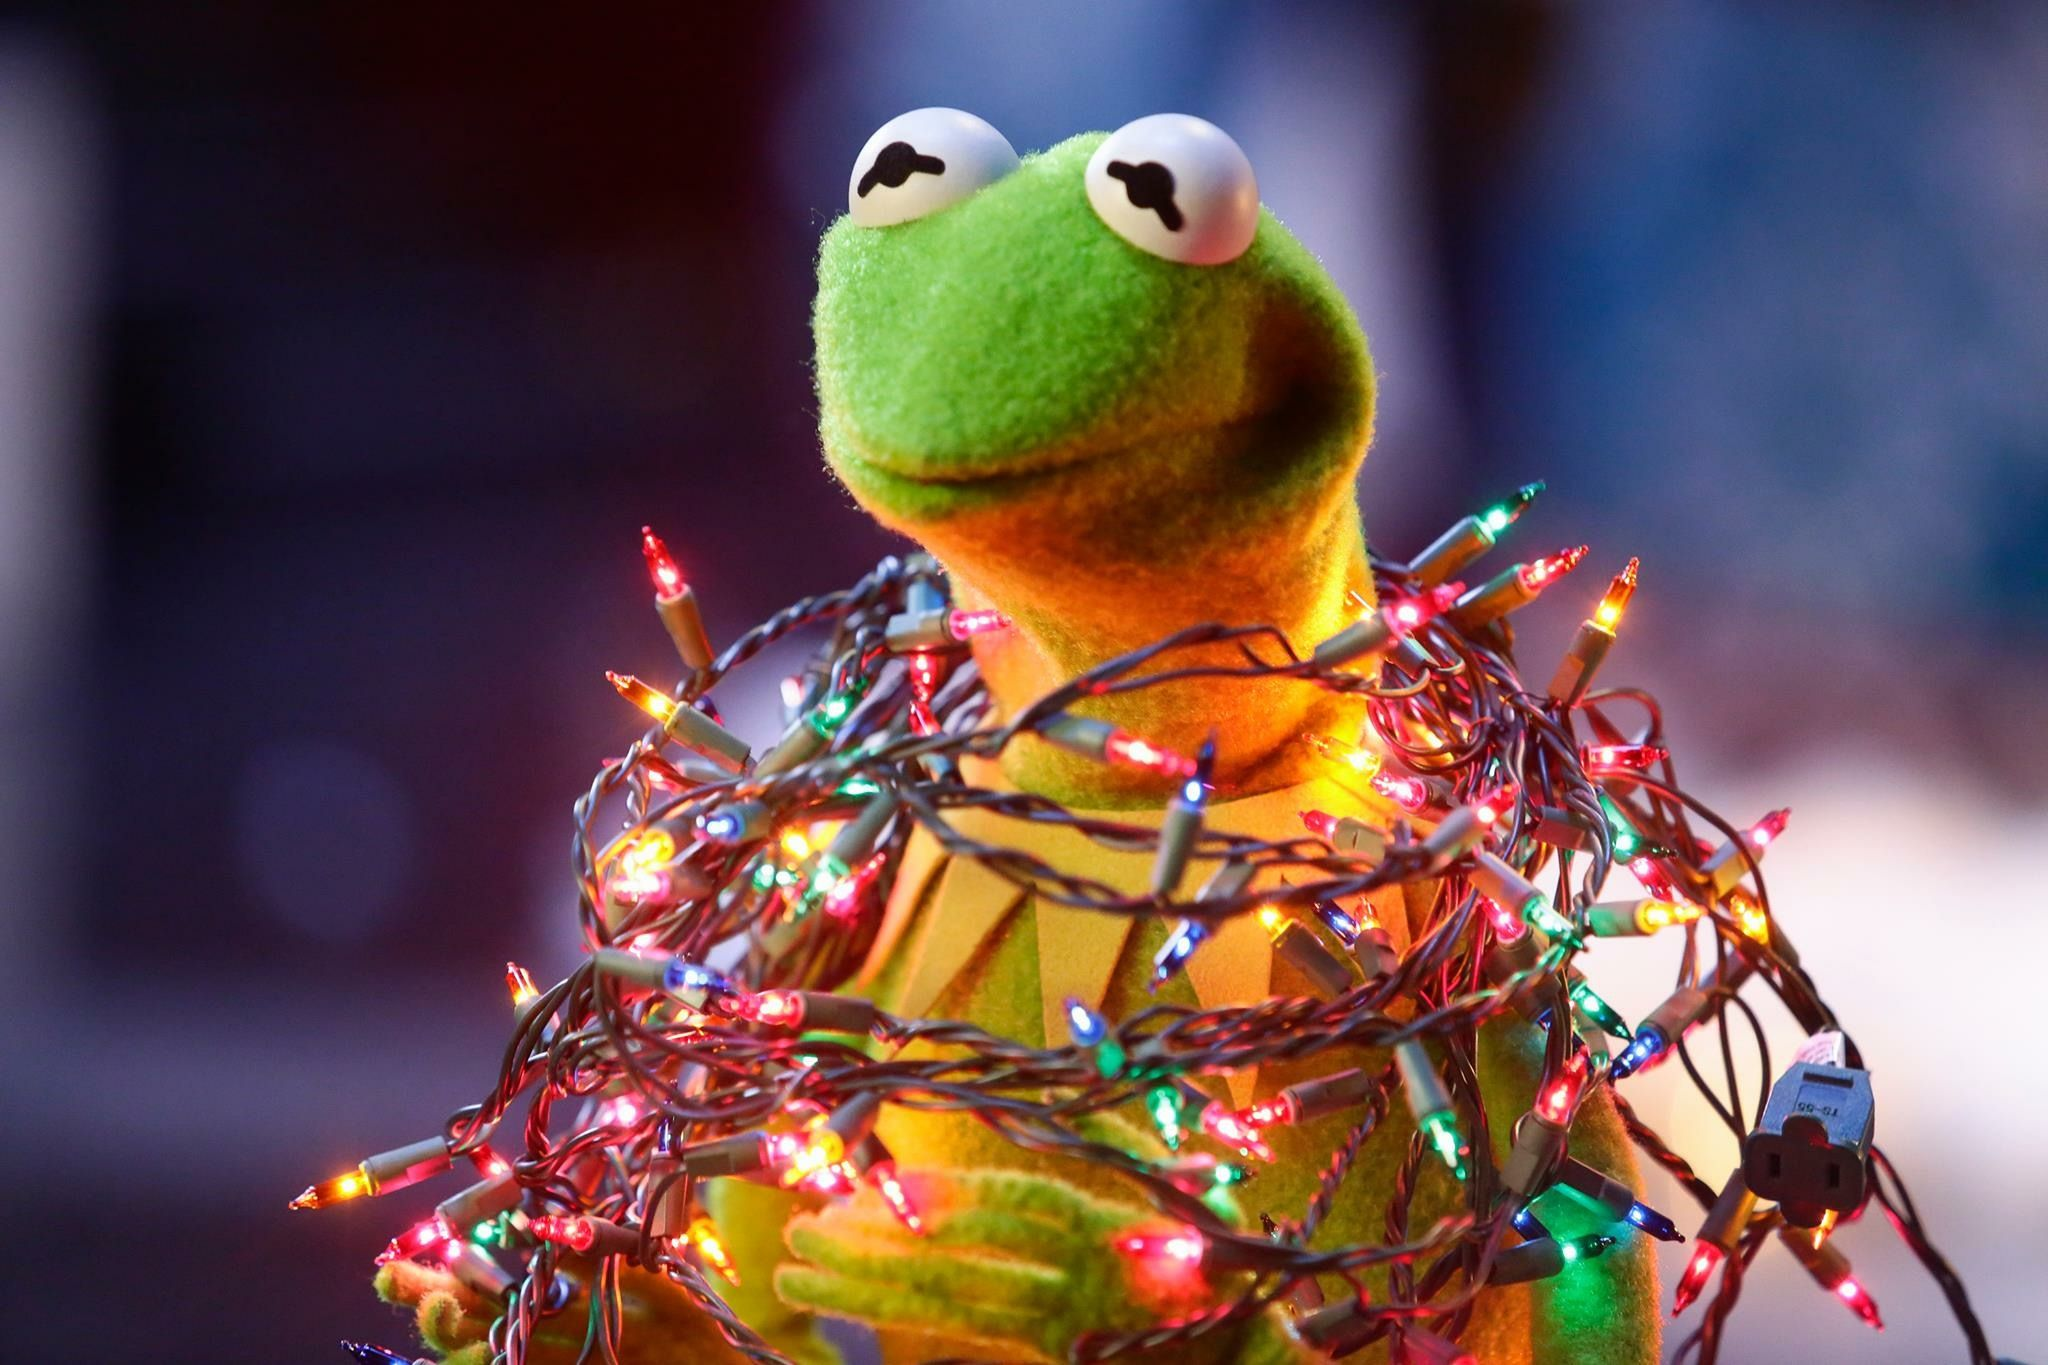 Pin By Joie Boughner On Christmas Crafts And Treats Kermit Kermit